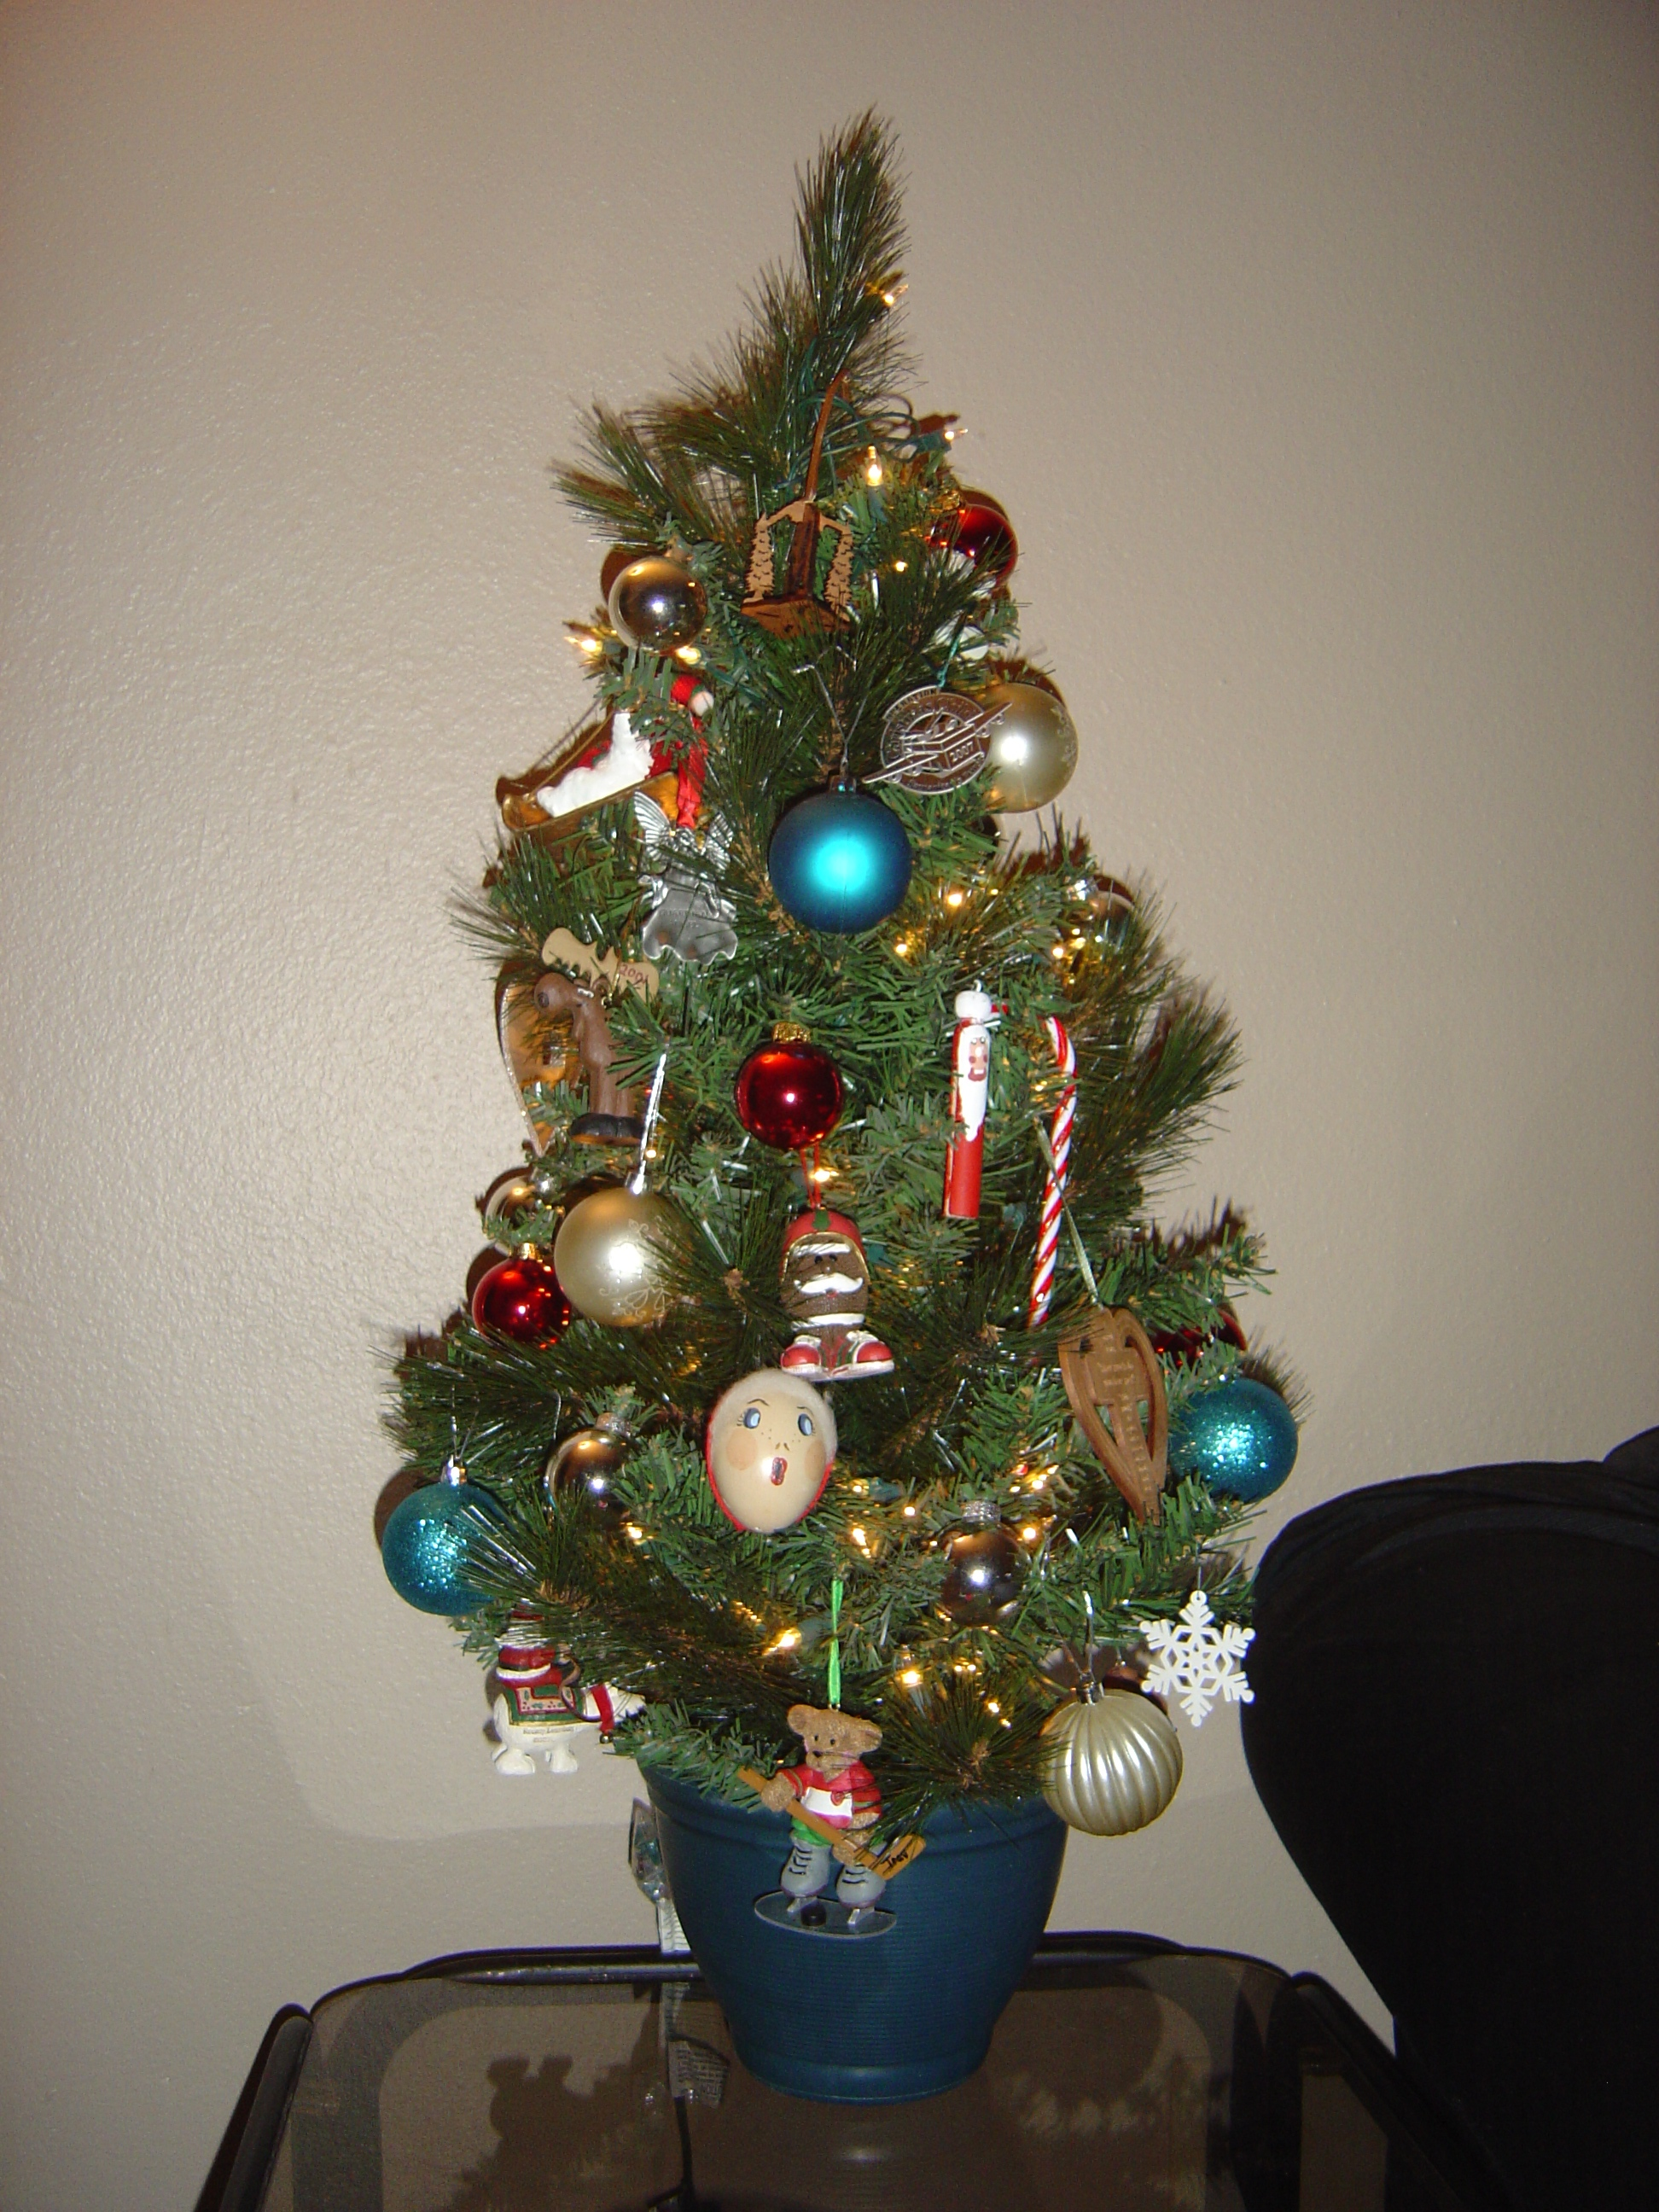 Our little Christmas tree that we bought last year when we lived in an apartment.